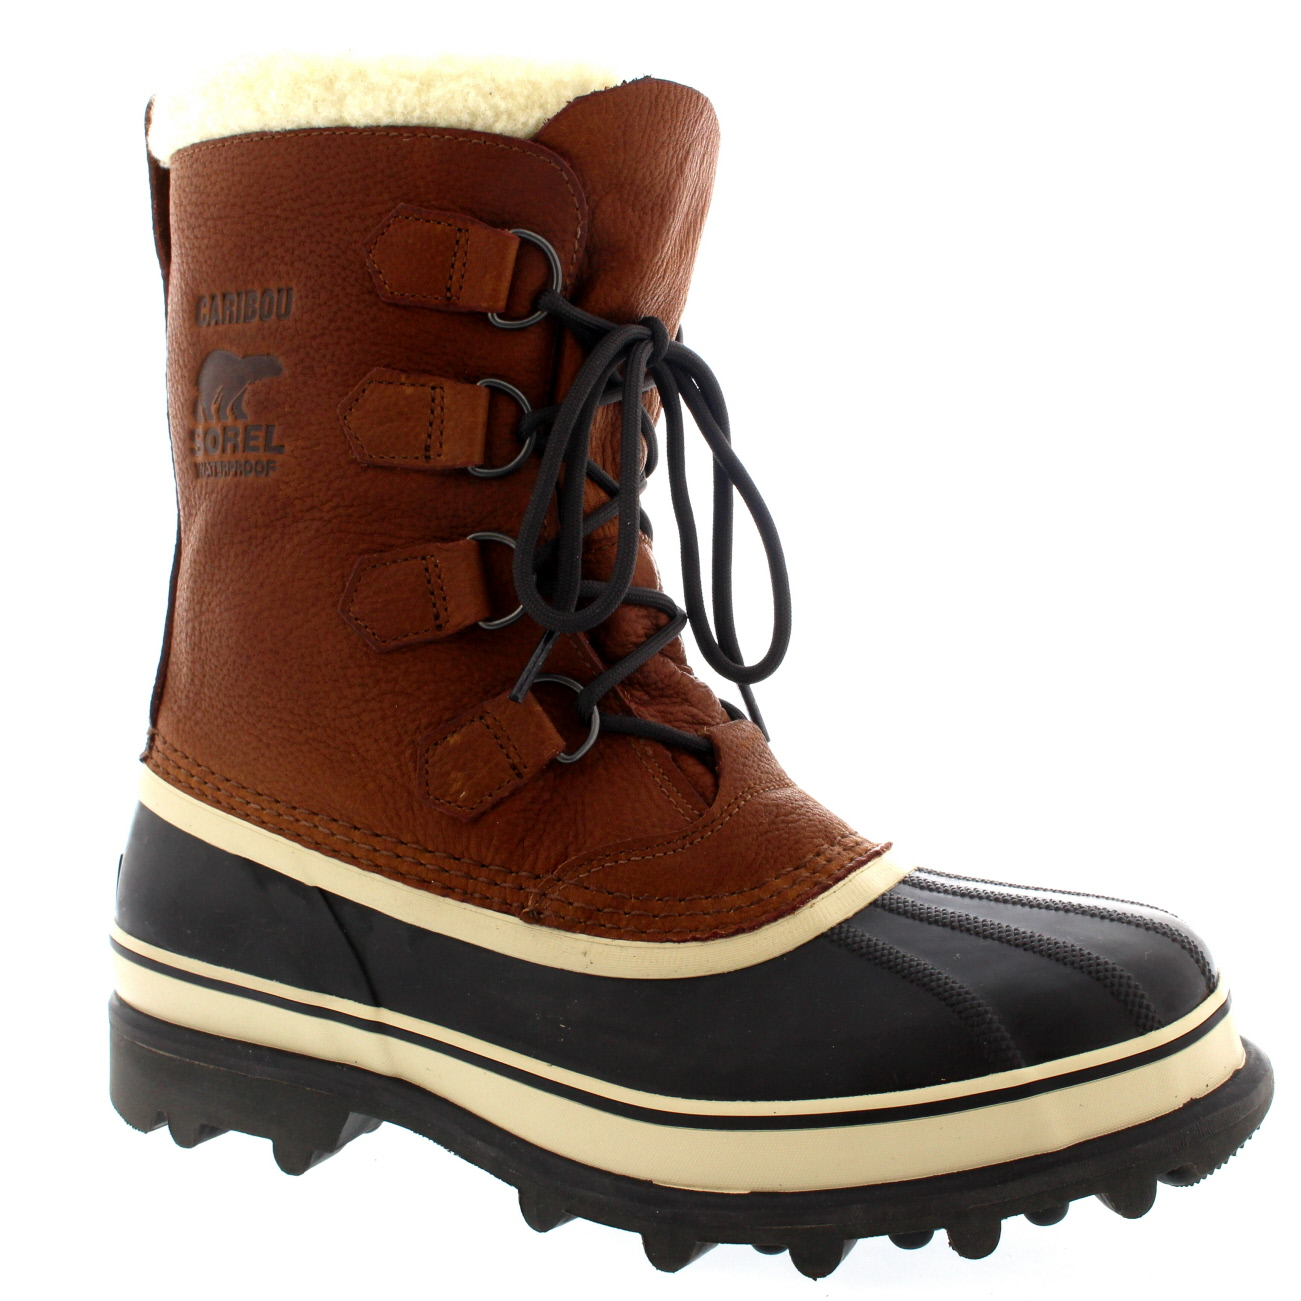 Sorel Caribou Leather